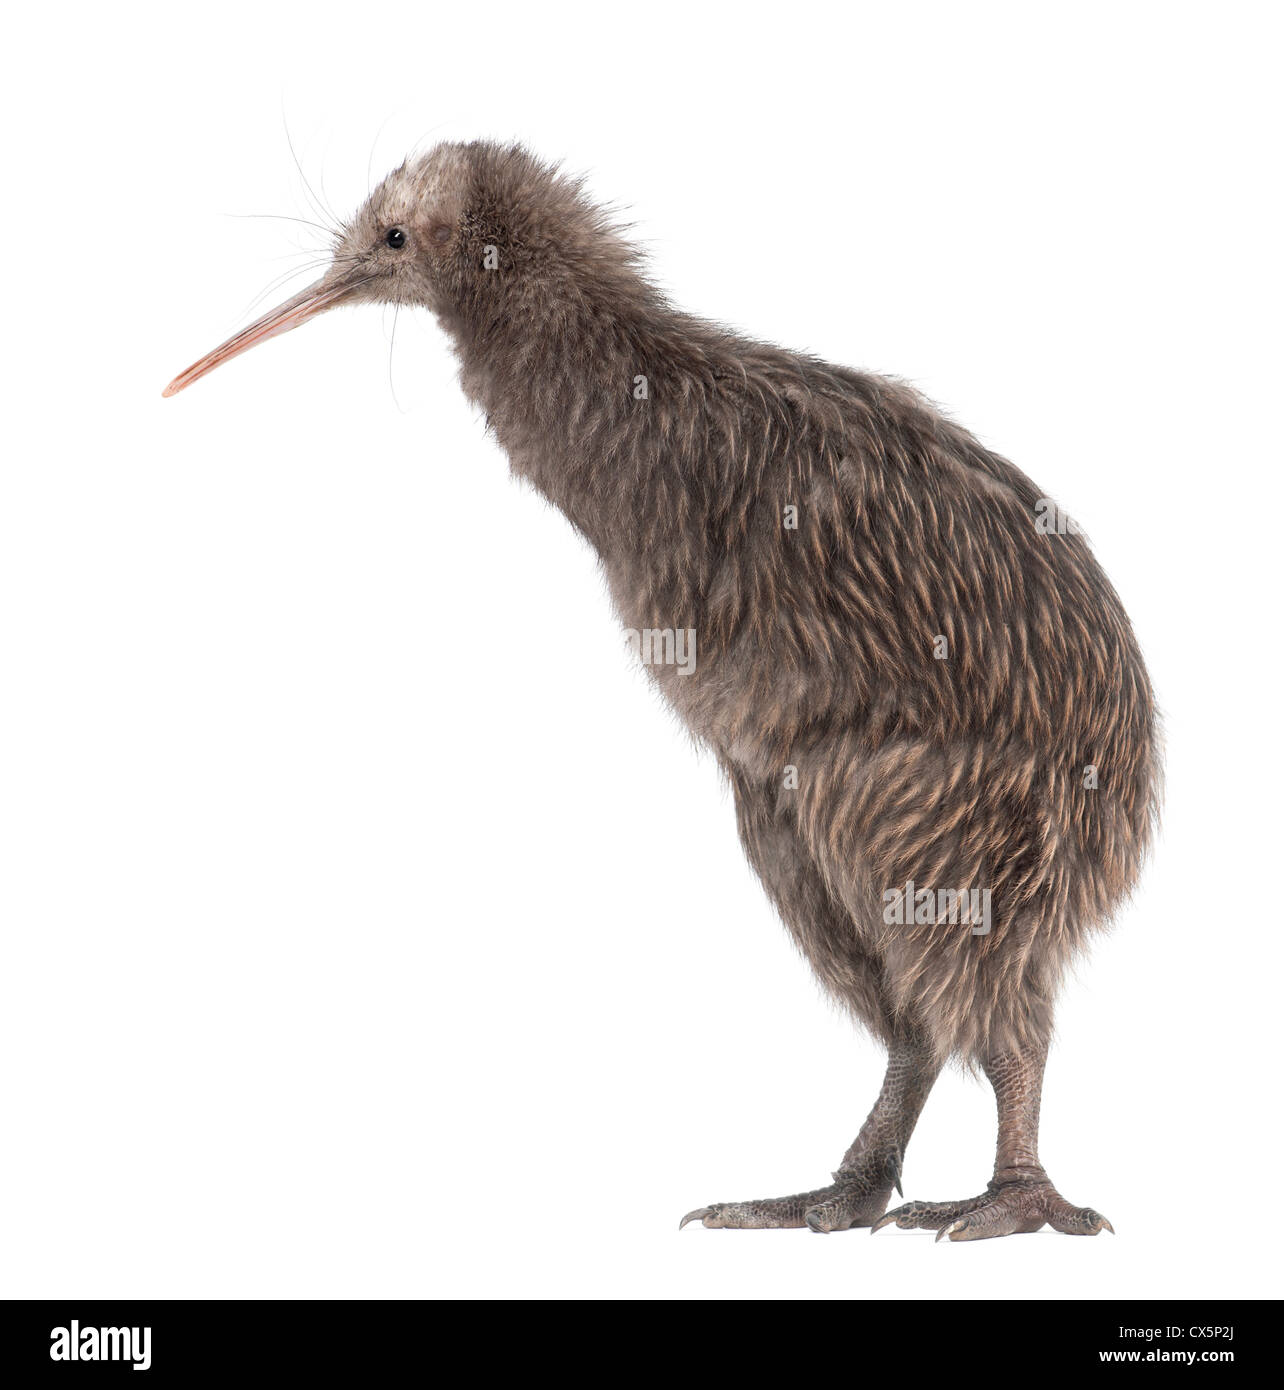 North Island Brown Kiwi, Apteryx mantelli, 5 months old, standing against white background Stock Photo